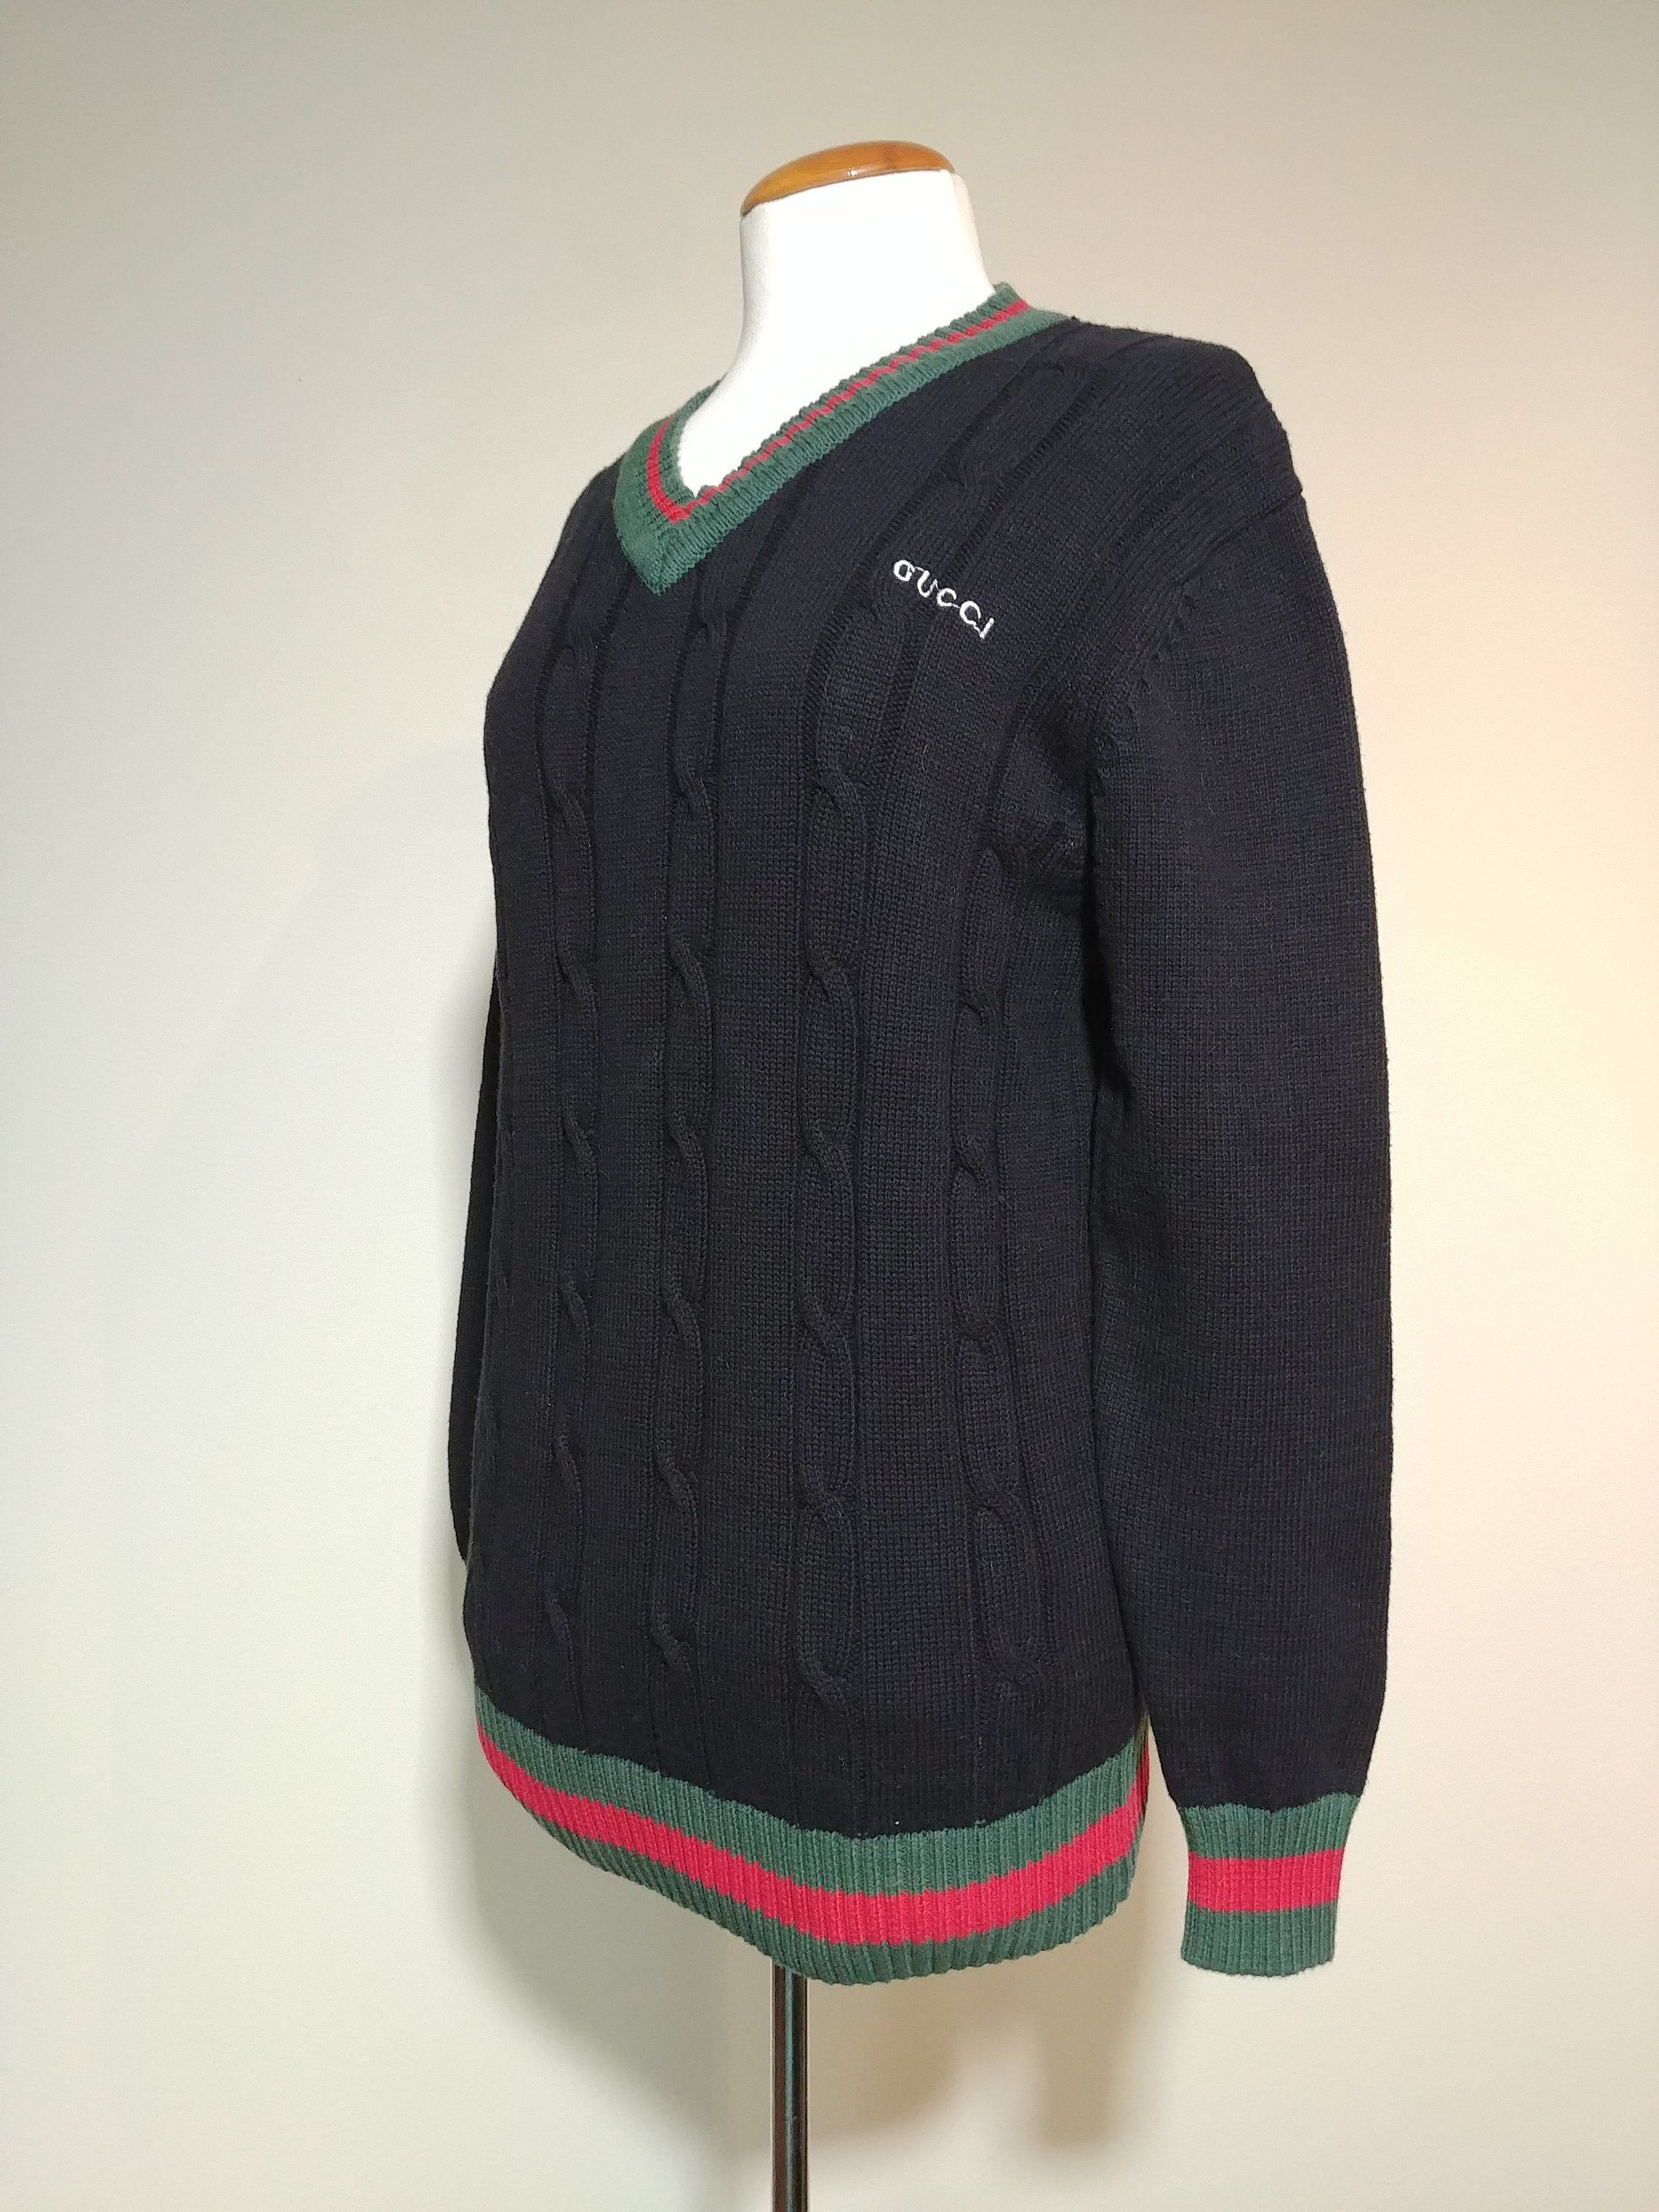 85781b44366ee7 Vintage Gucci Bootleg Men's Sweater, 90s Cotton Knit Gucci Knockoff V Neck  Pullover, Hip